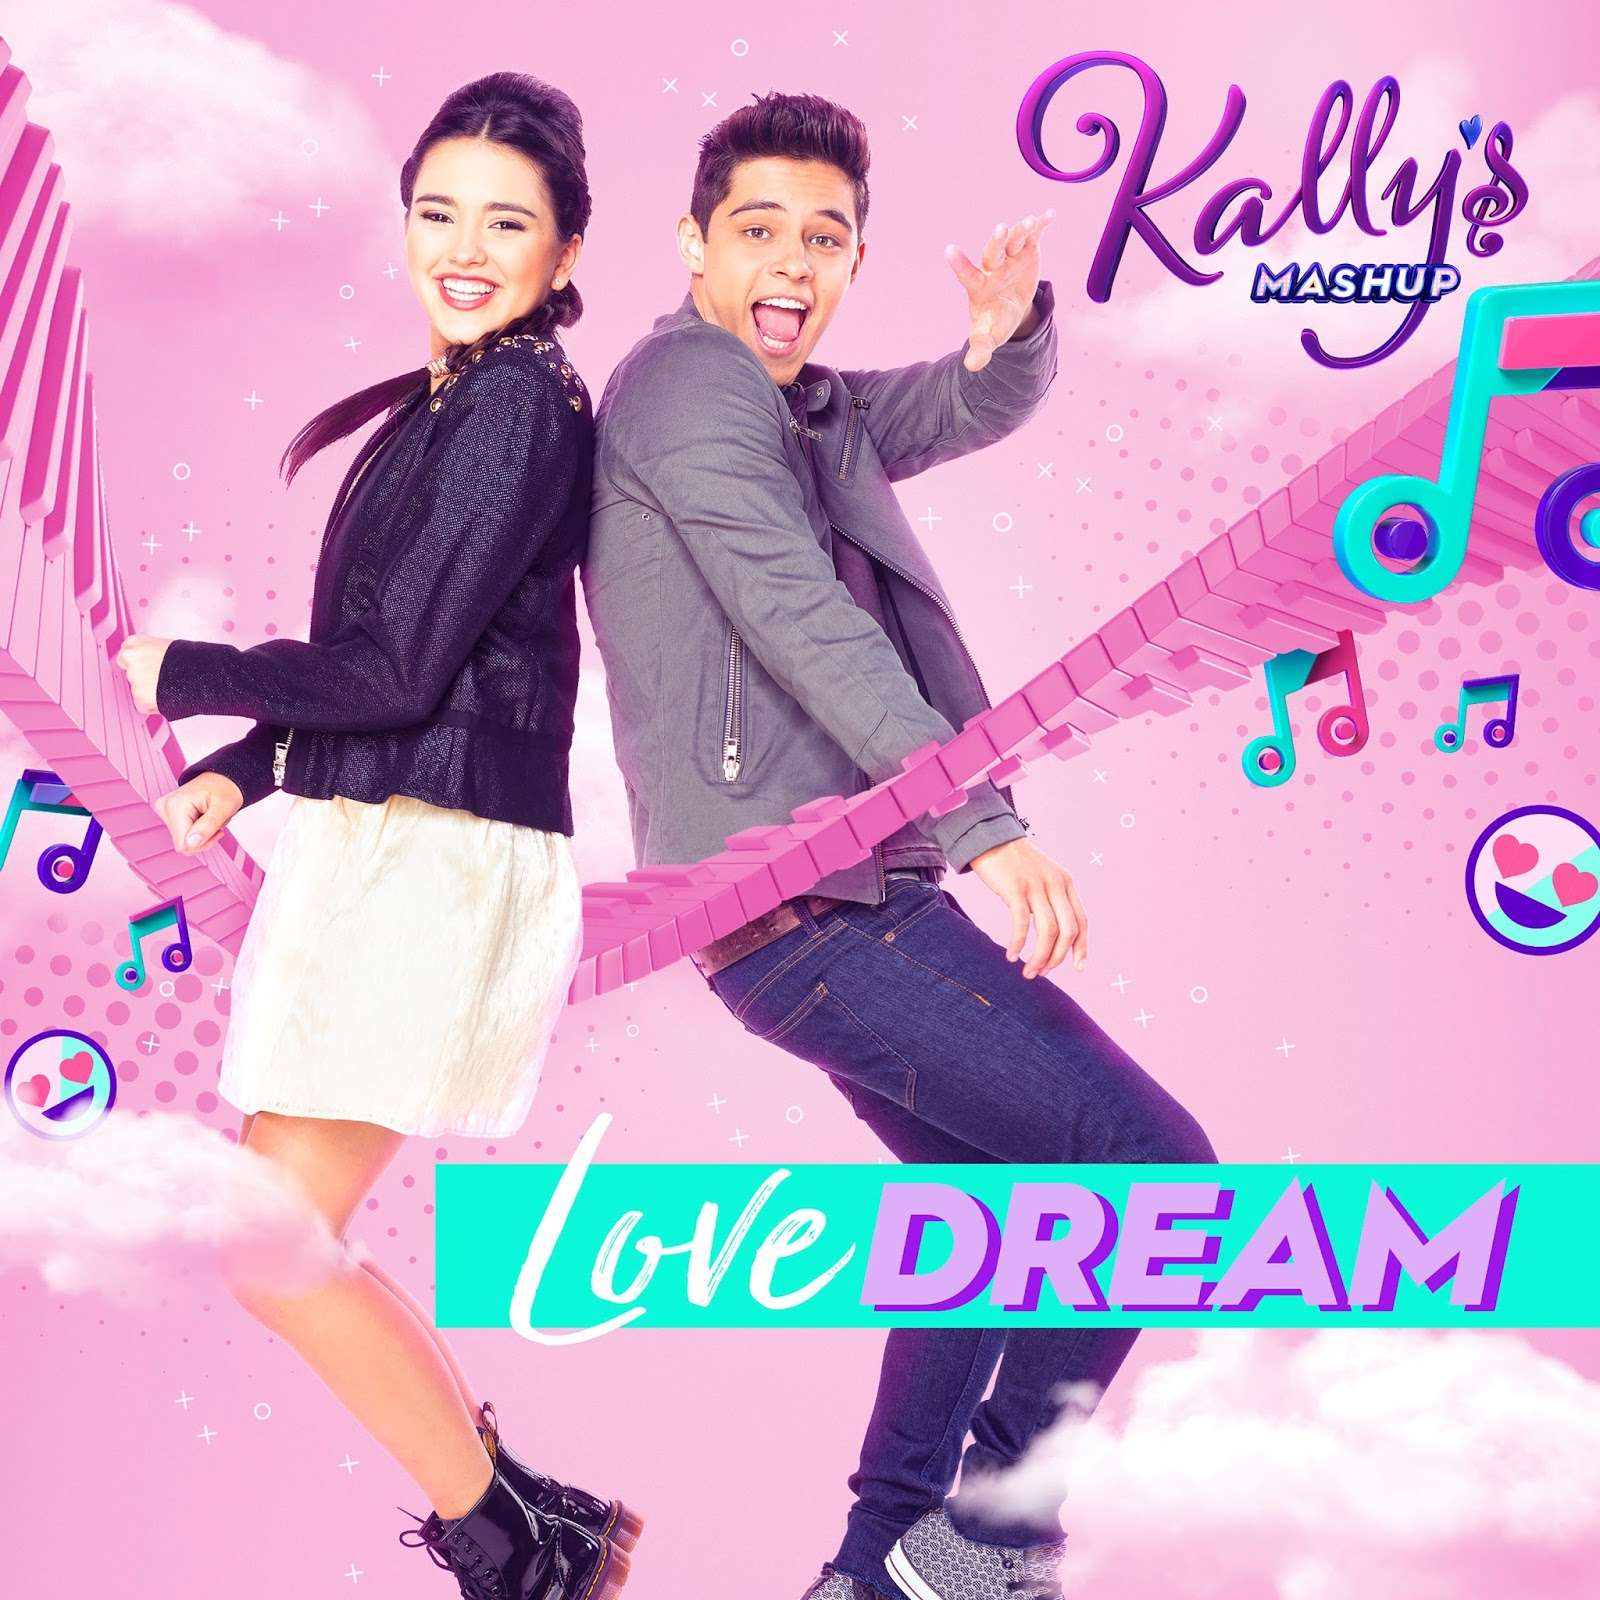 Best Love Mashup Song Download It: Kally's Mashup Brasil: Download: KALLY'S Mashup Cast